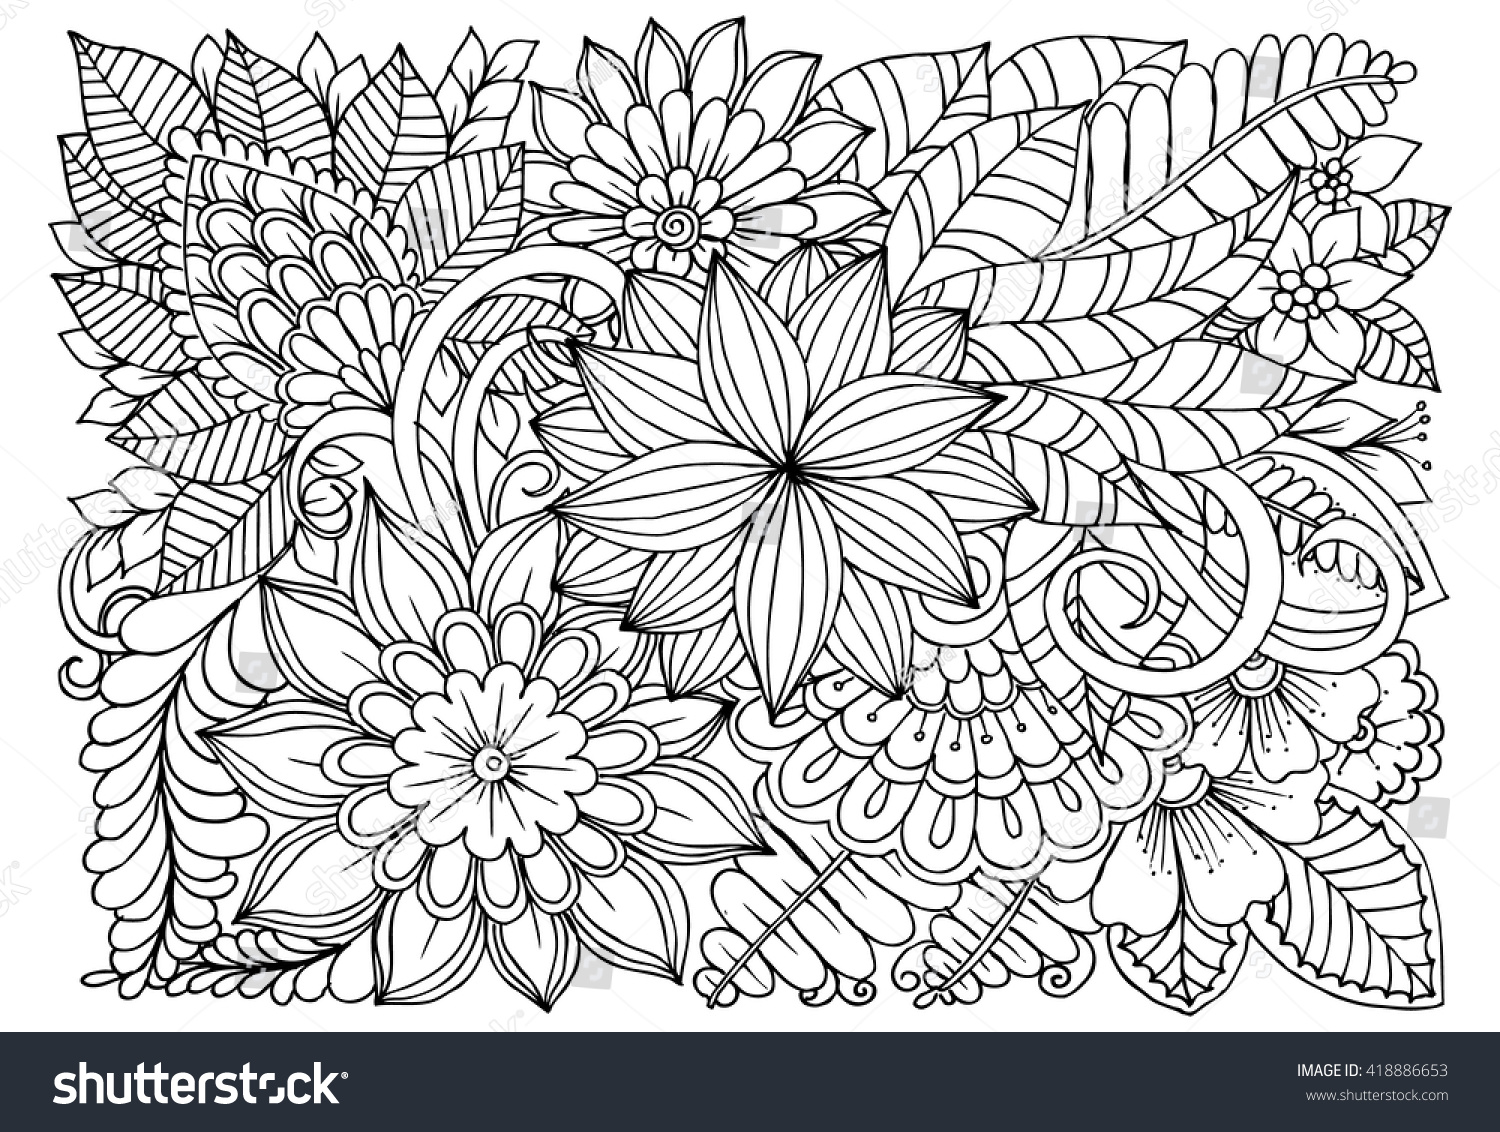 Flowers Black White Doodle Art Coloring Stock Vector (Royalty Free ...